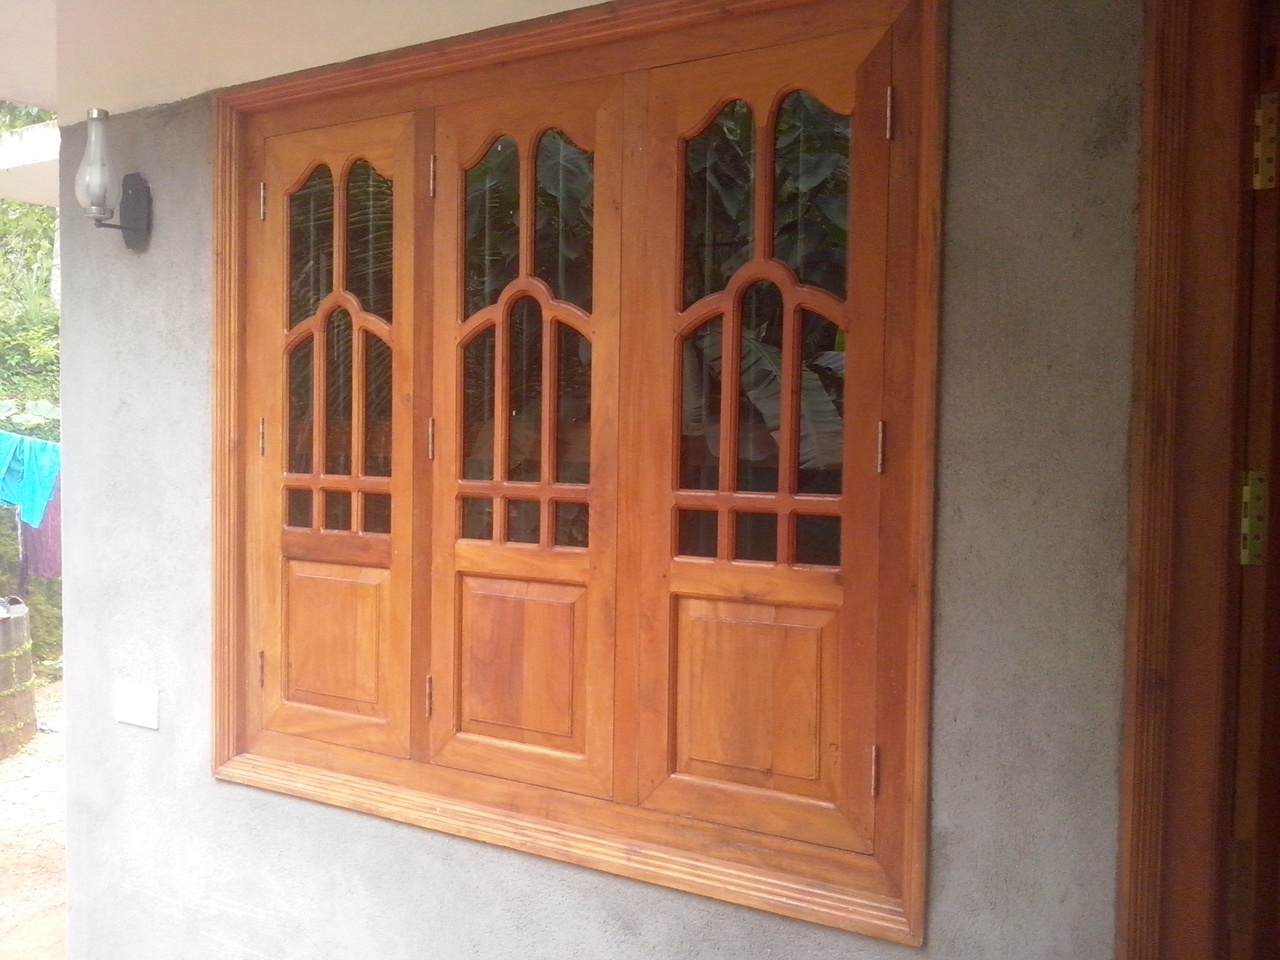 BAVAS WOOD WORKS: Kerala Style wooden window door designs